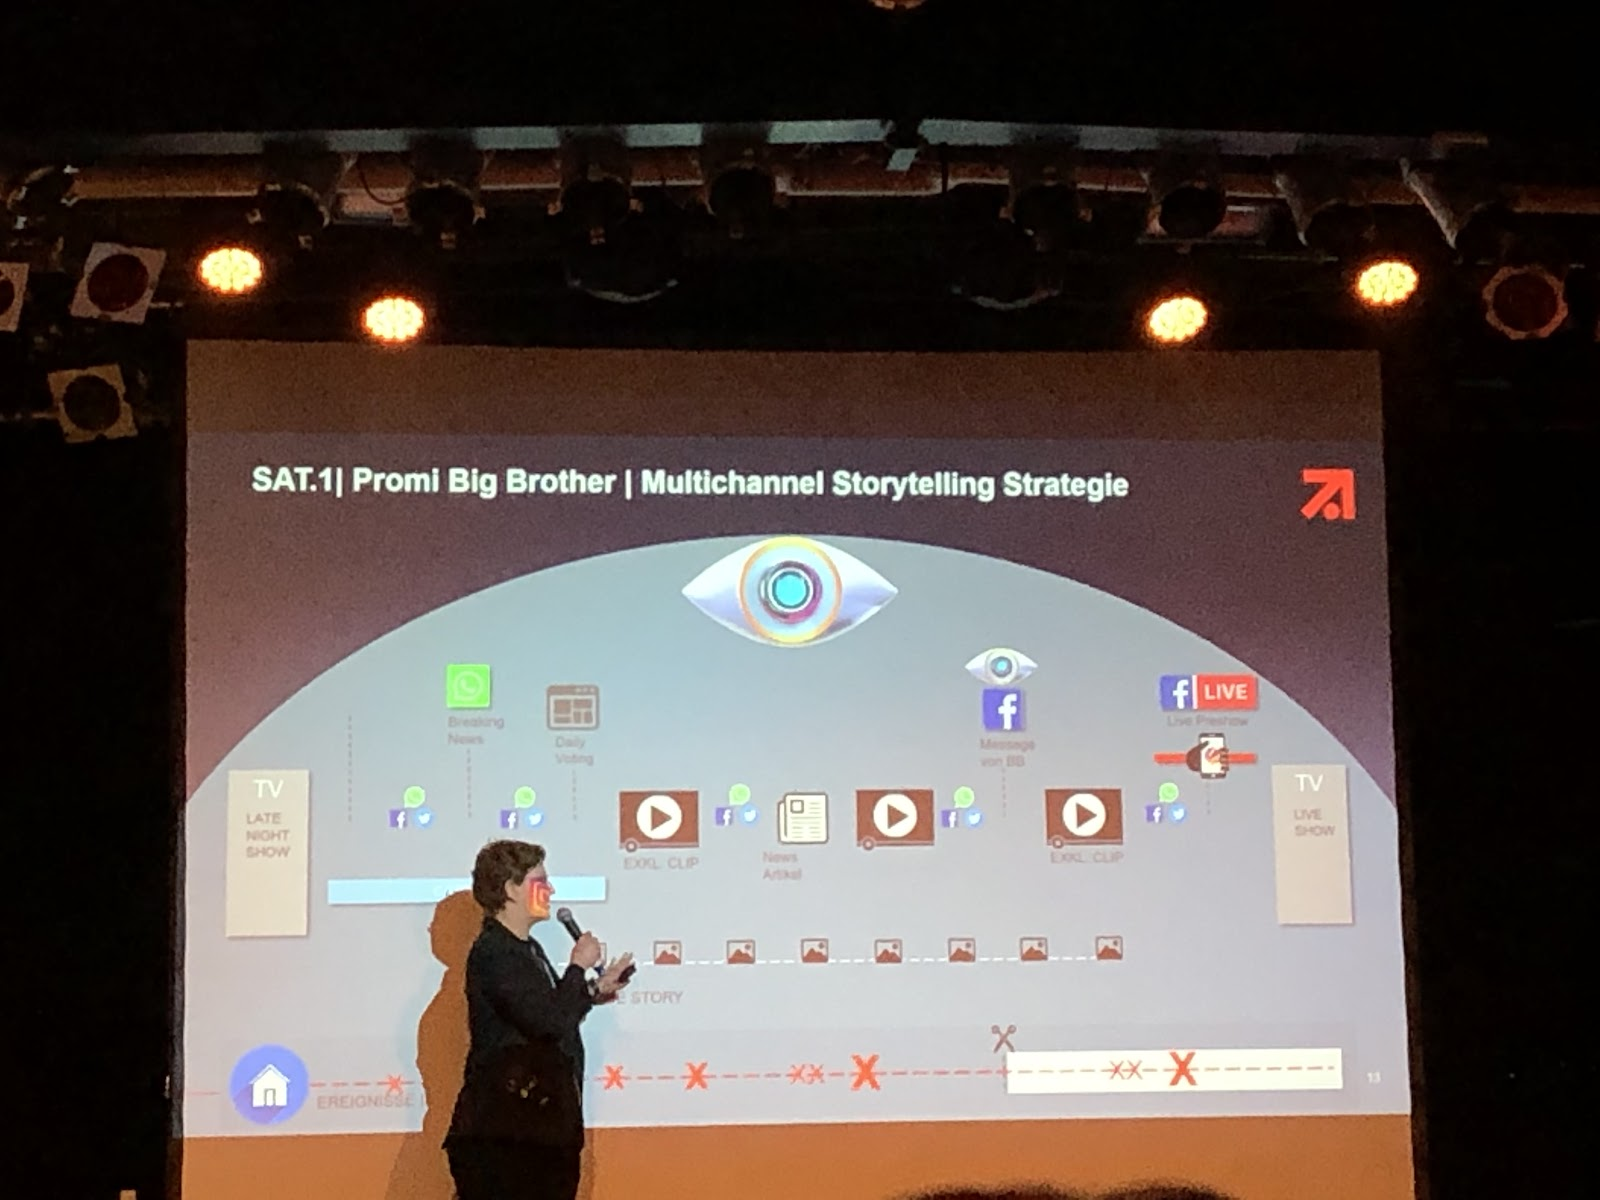 Promi Big Brother Multichannel Storytelling Strategie